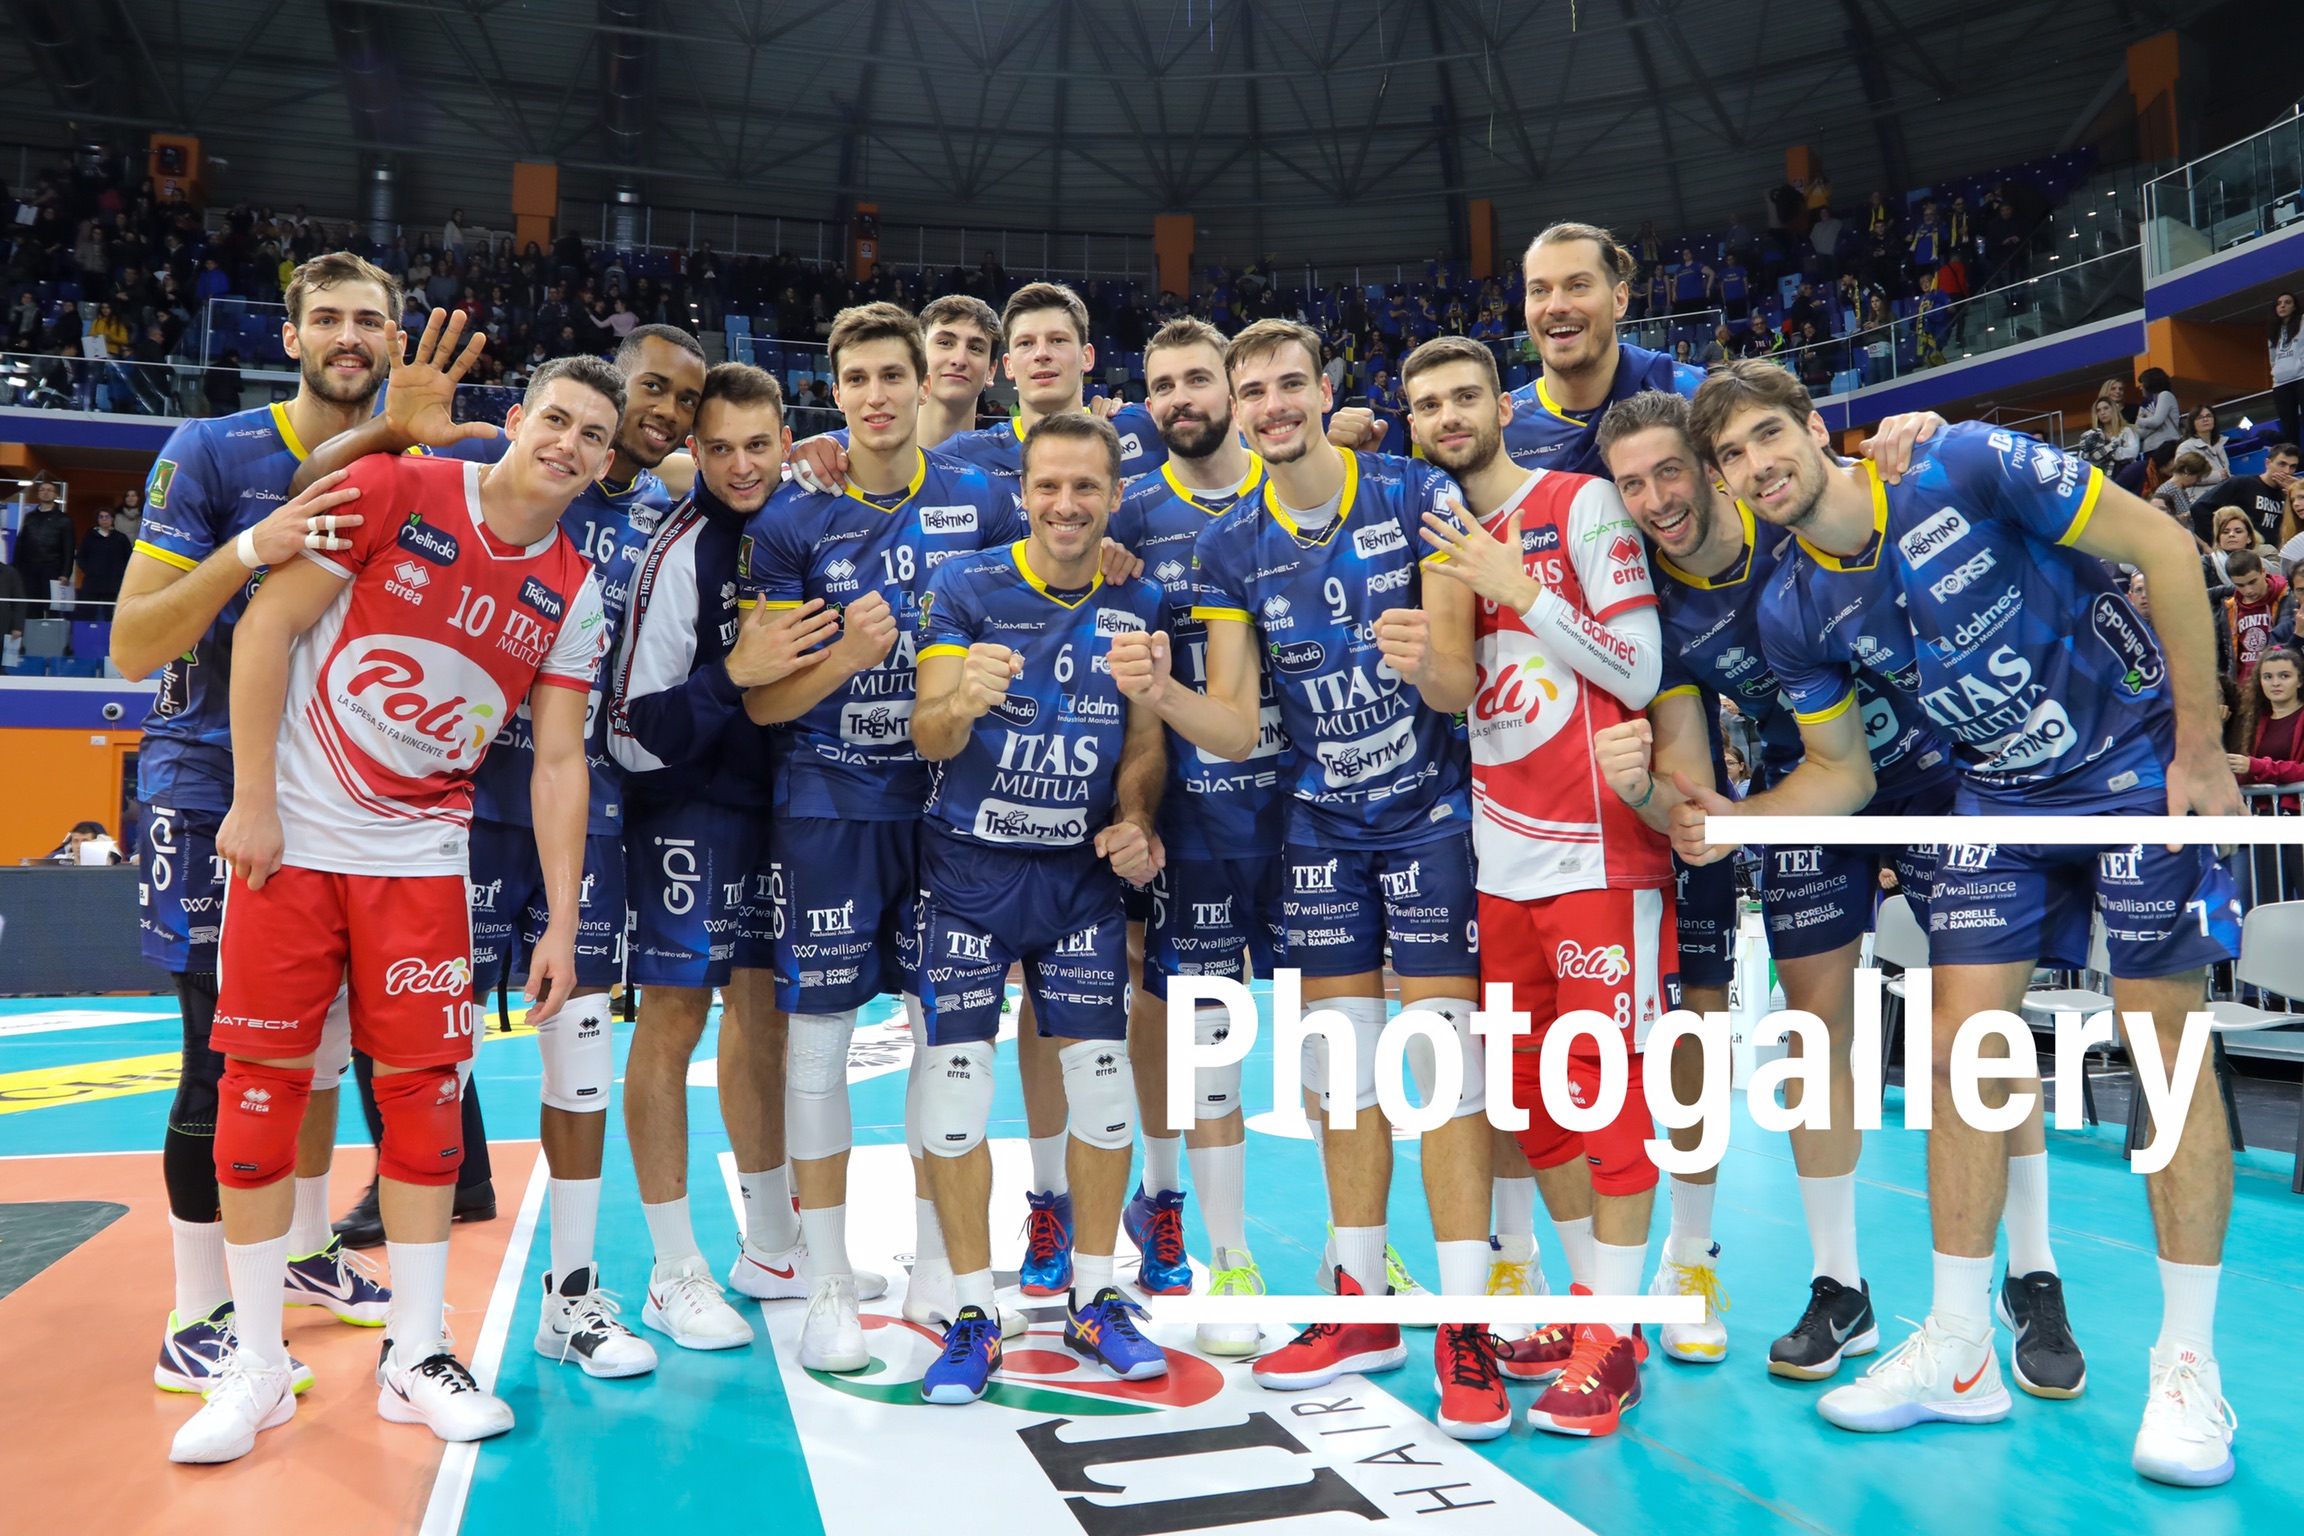 Italy: Photogallery of Allianz Milano-Itas Trentino